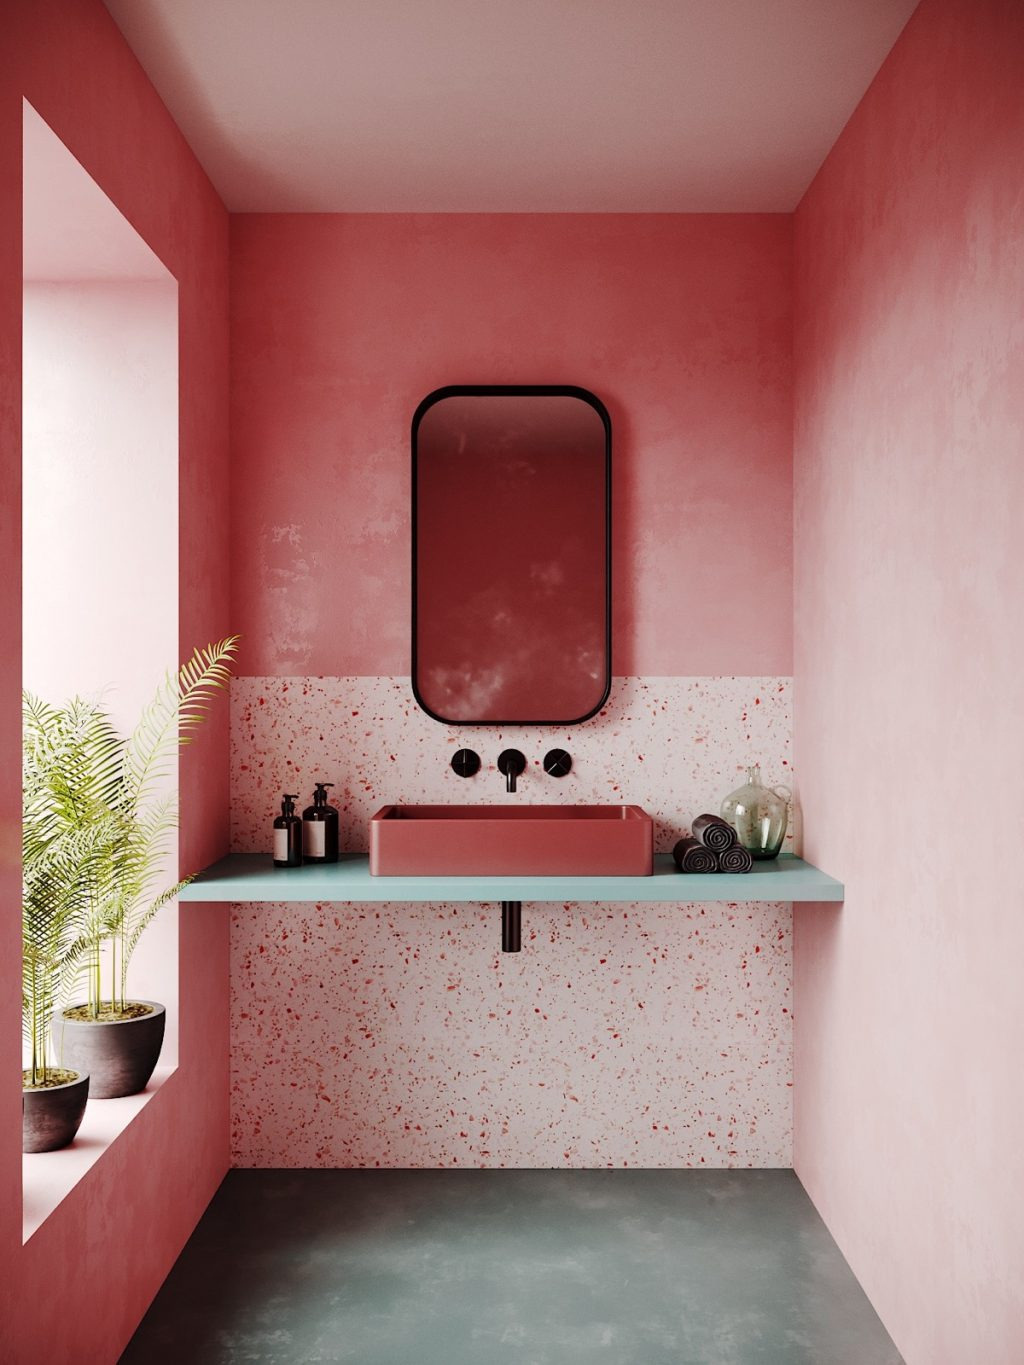 Bathroom Wall Decorations Ideas Luxury 51 Pink Bathrooms with Tips S and Accessories to Help